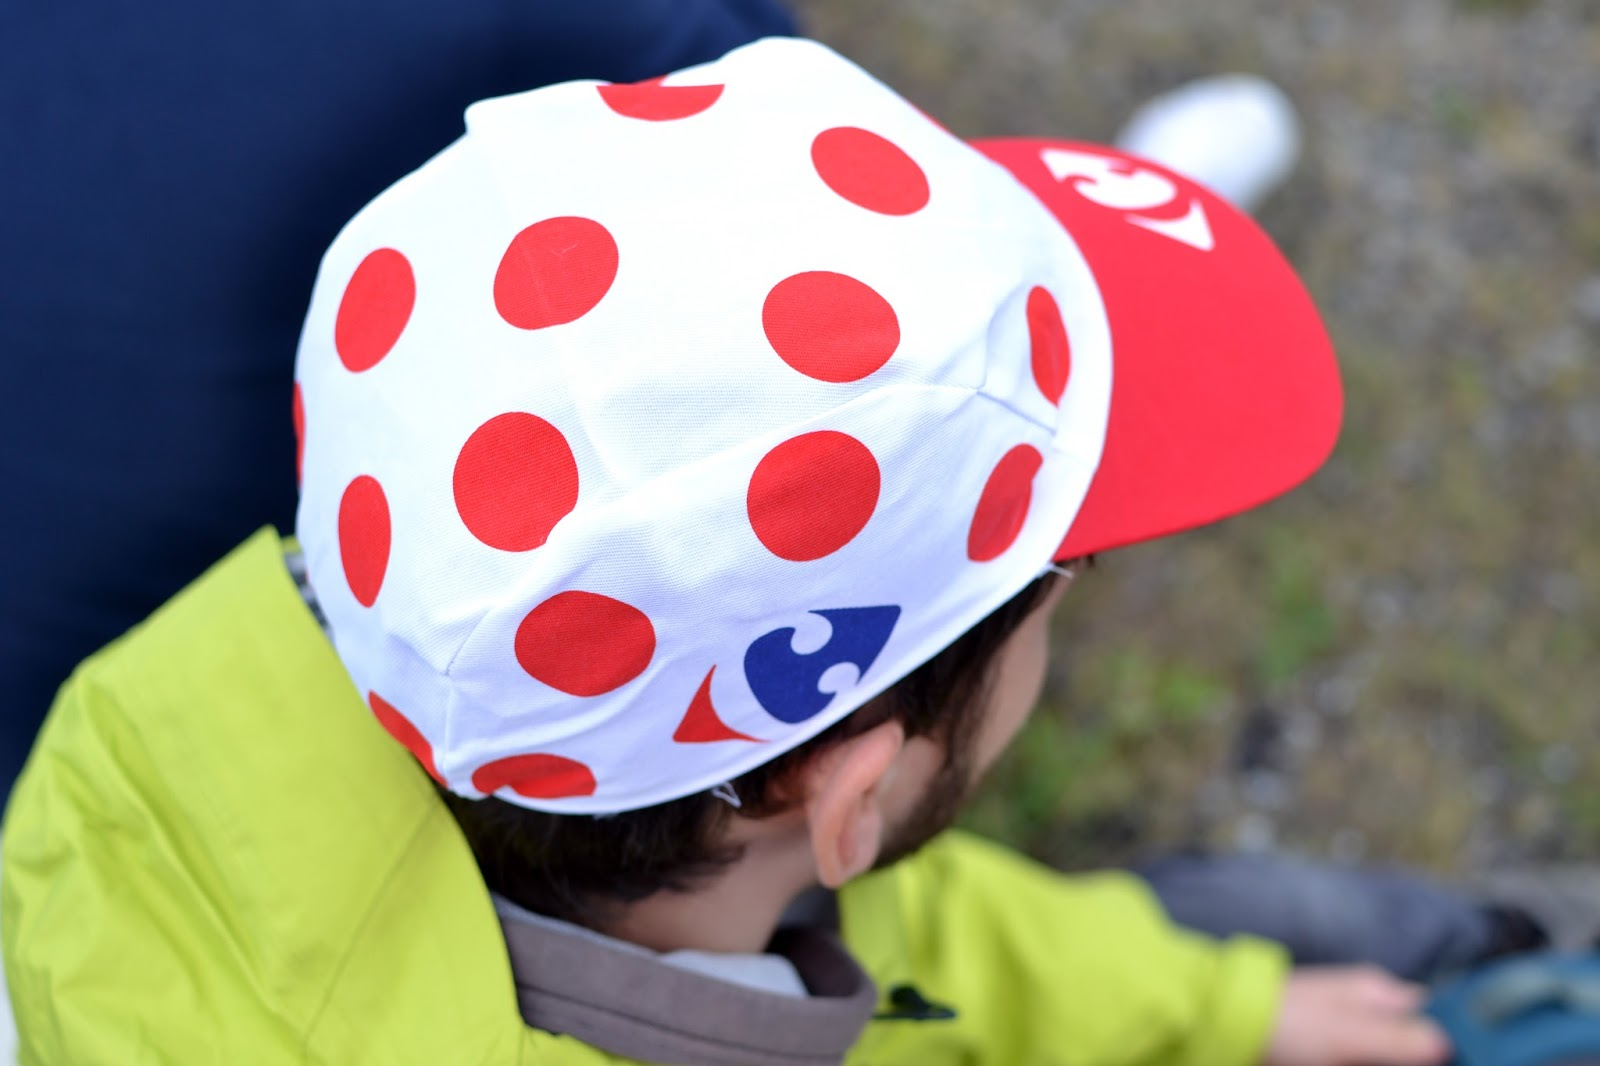 polka dot hat, king of the mountain, caravan, le tour de france, le tour, the tour de france, team sky, peloton, yorkshire, lancashire, tour de yorkshire, blackstone edge, cycling, velo, littleborough, greater manchester, rochdale, cragg vale, north west, TDF, 2014, bikes, photography, sport, athletes, cyclists, uk, great Britain, united kingdom, france, french,